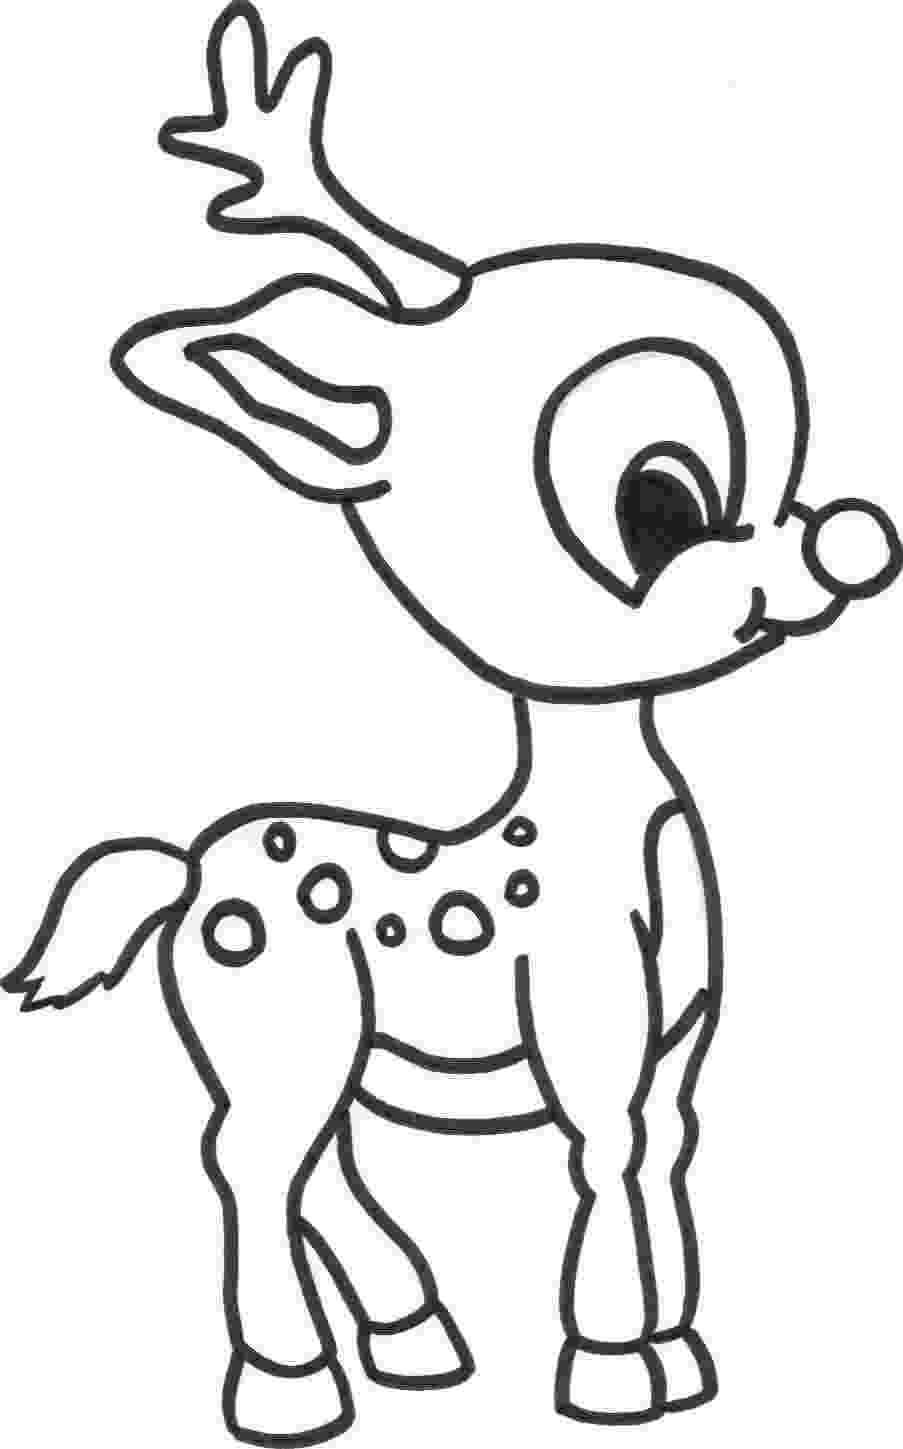 baby reindeer coloring pages 11 rudolph reindeer coloring pages gtgt disney coloring pages reindeer pages baby coloring